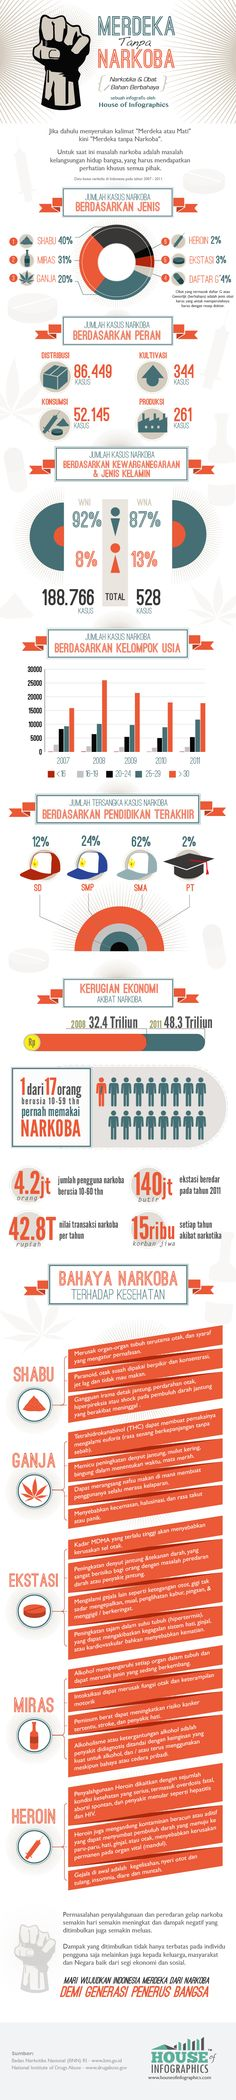 Infografis: Indonesia Merdeka Tanpa Narkoba - House of Infographics, June 2013